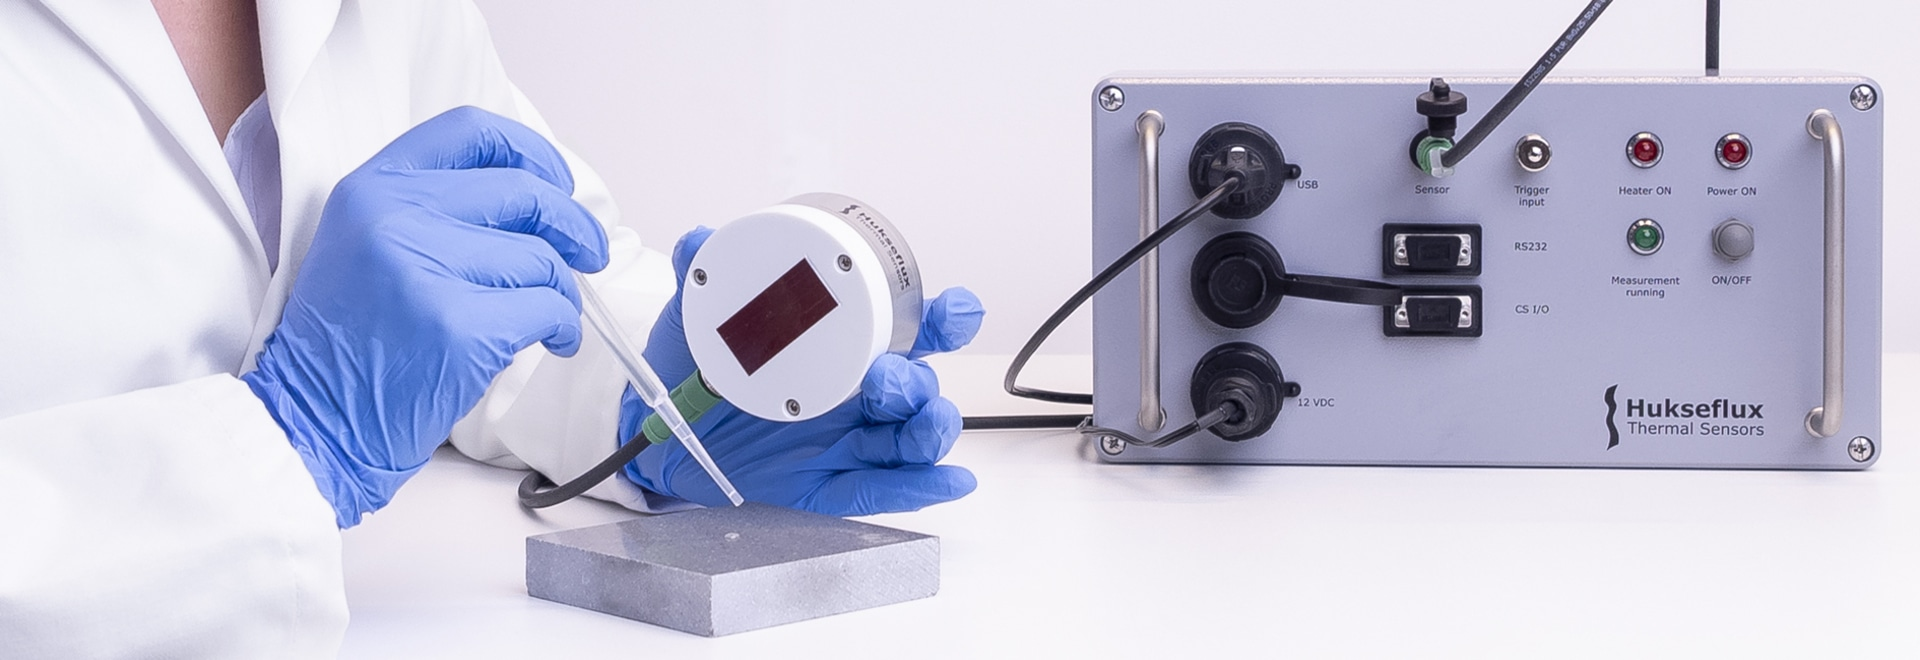 STPSYS05 measuring system for determining thermal properties